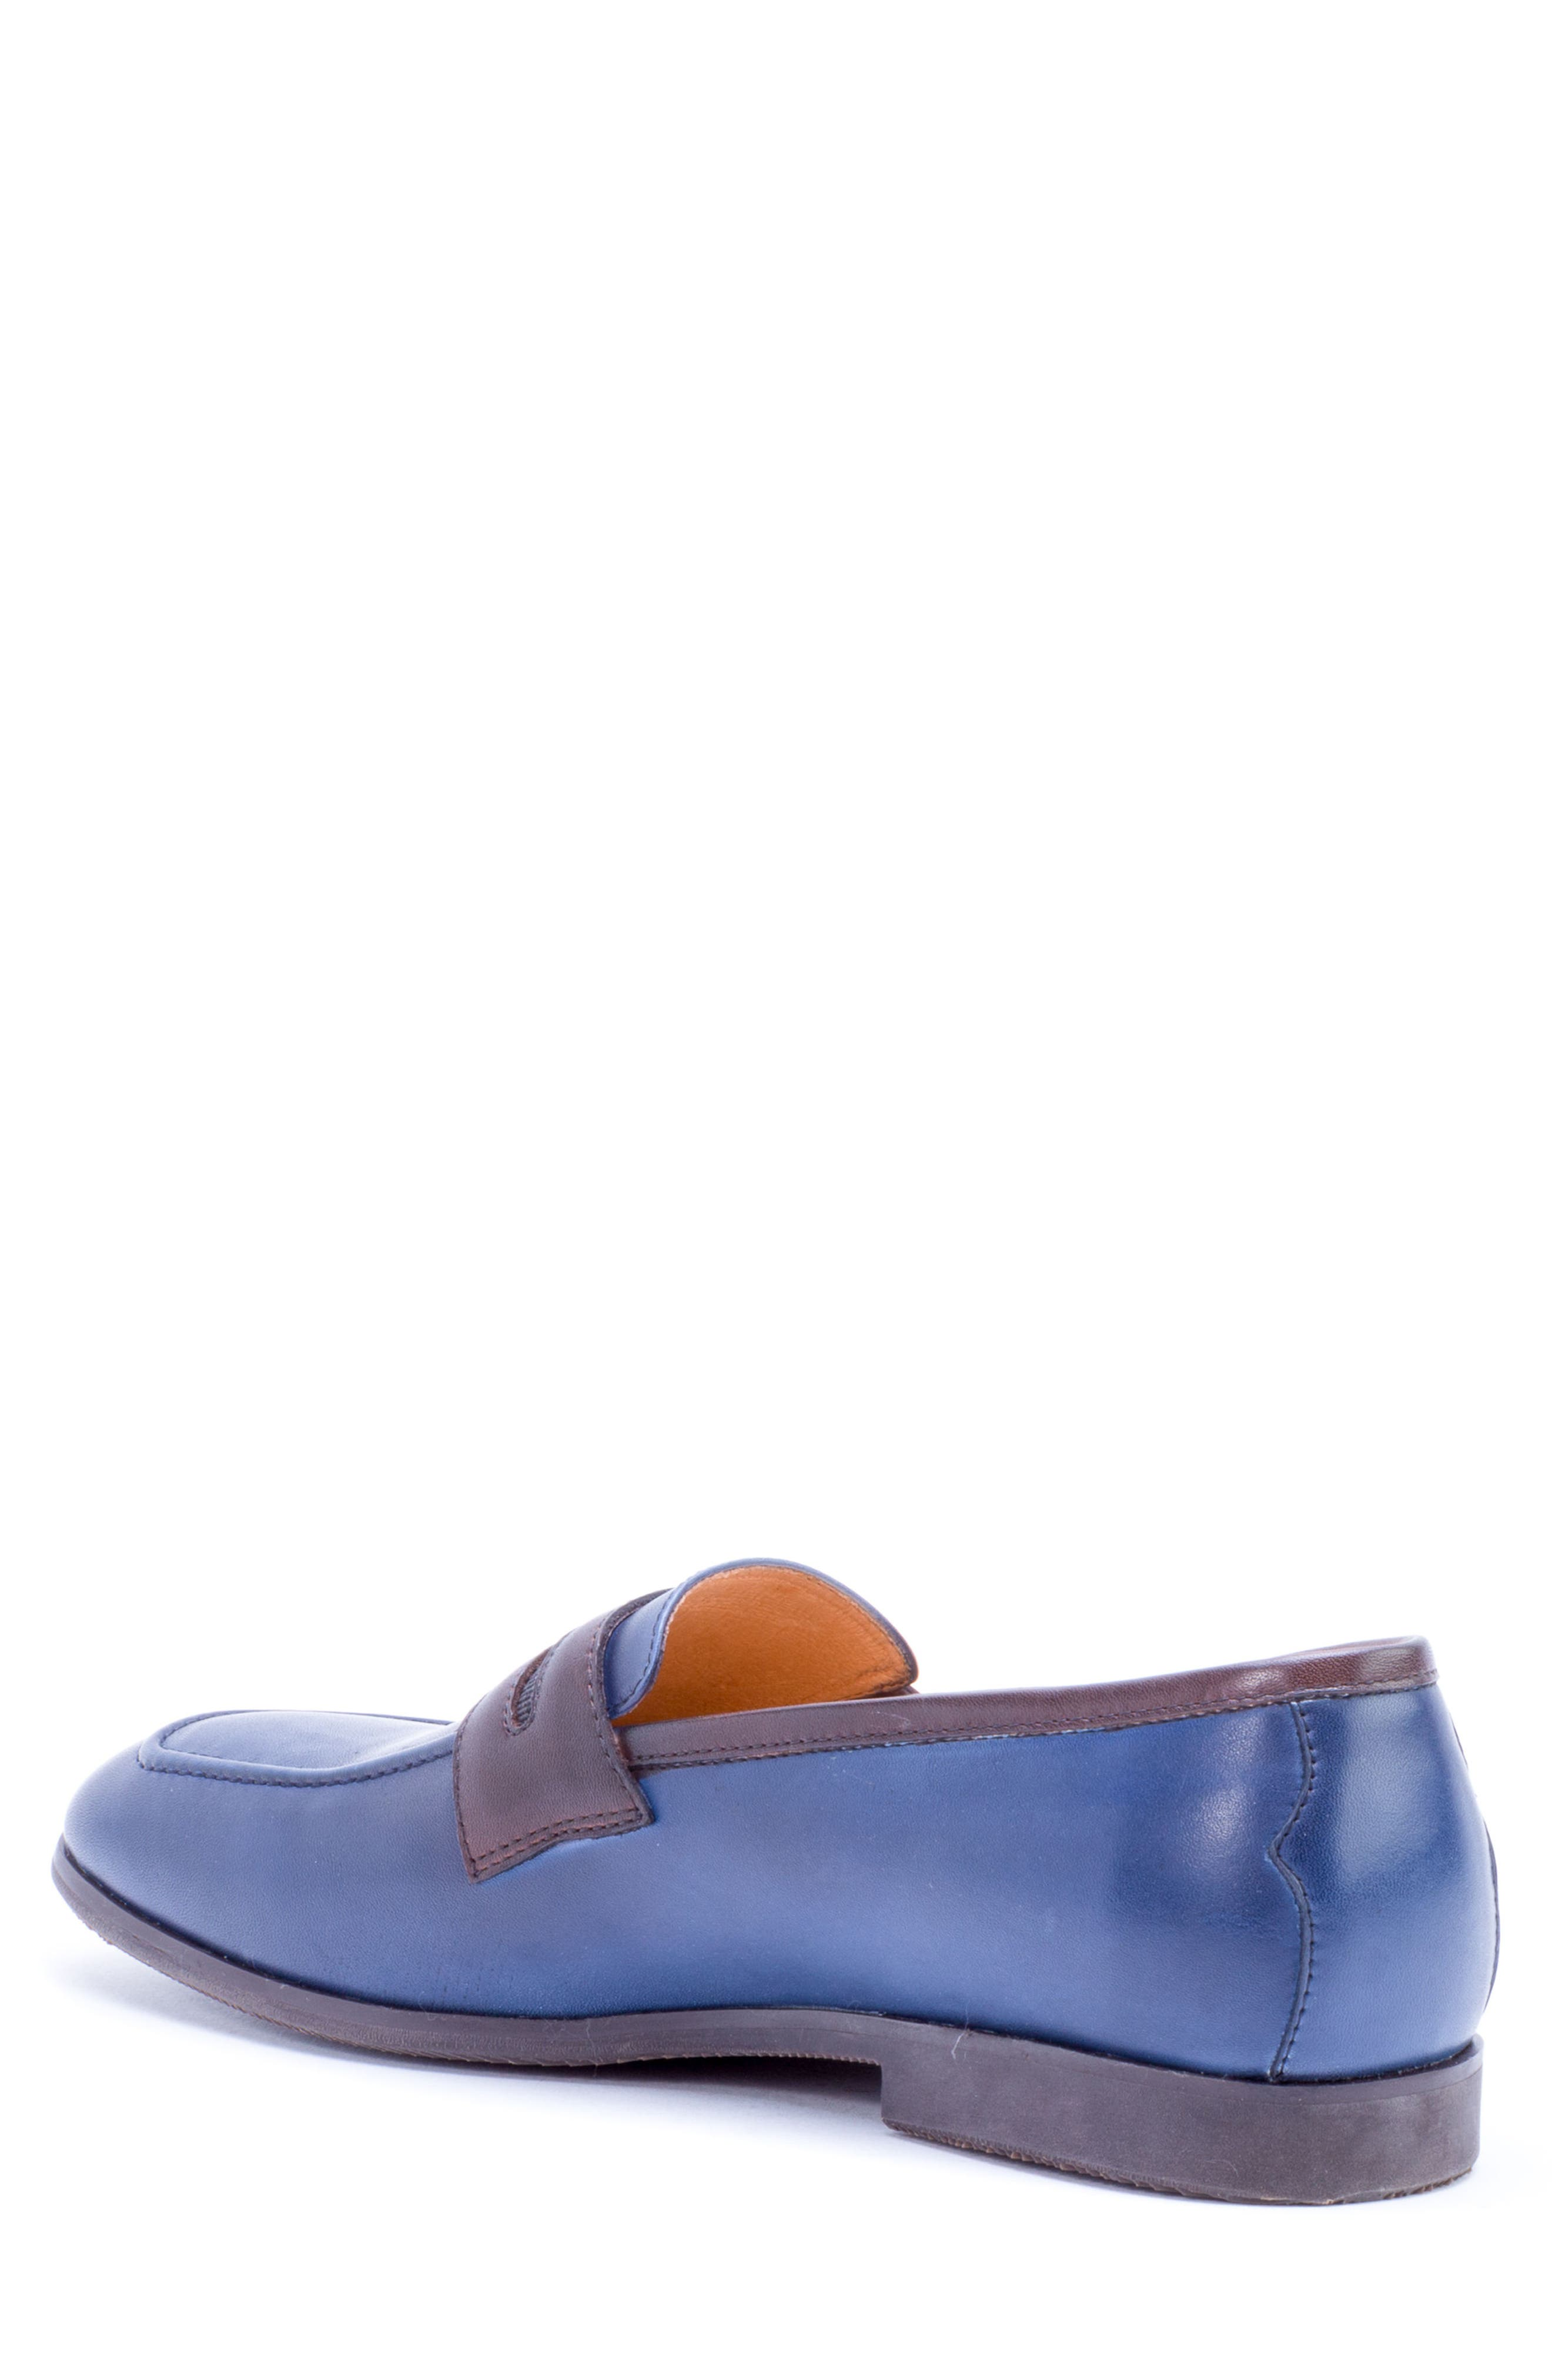 Apron Toe Penny Loafer,                             Alternate thumbnail 2, color,                             Navy Leather